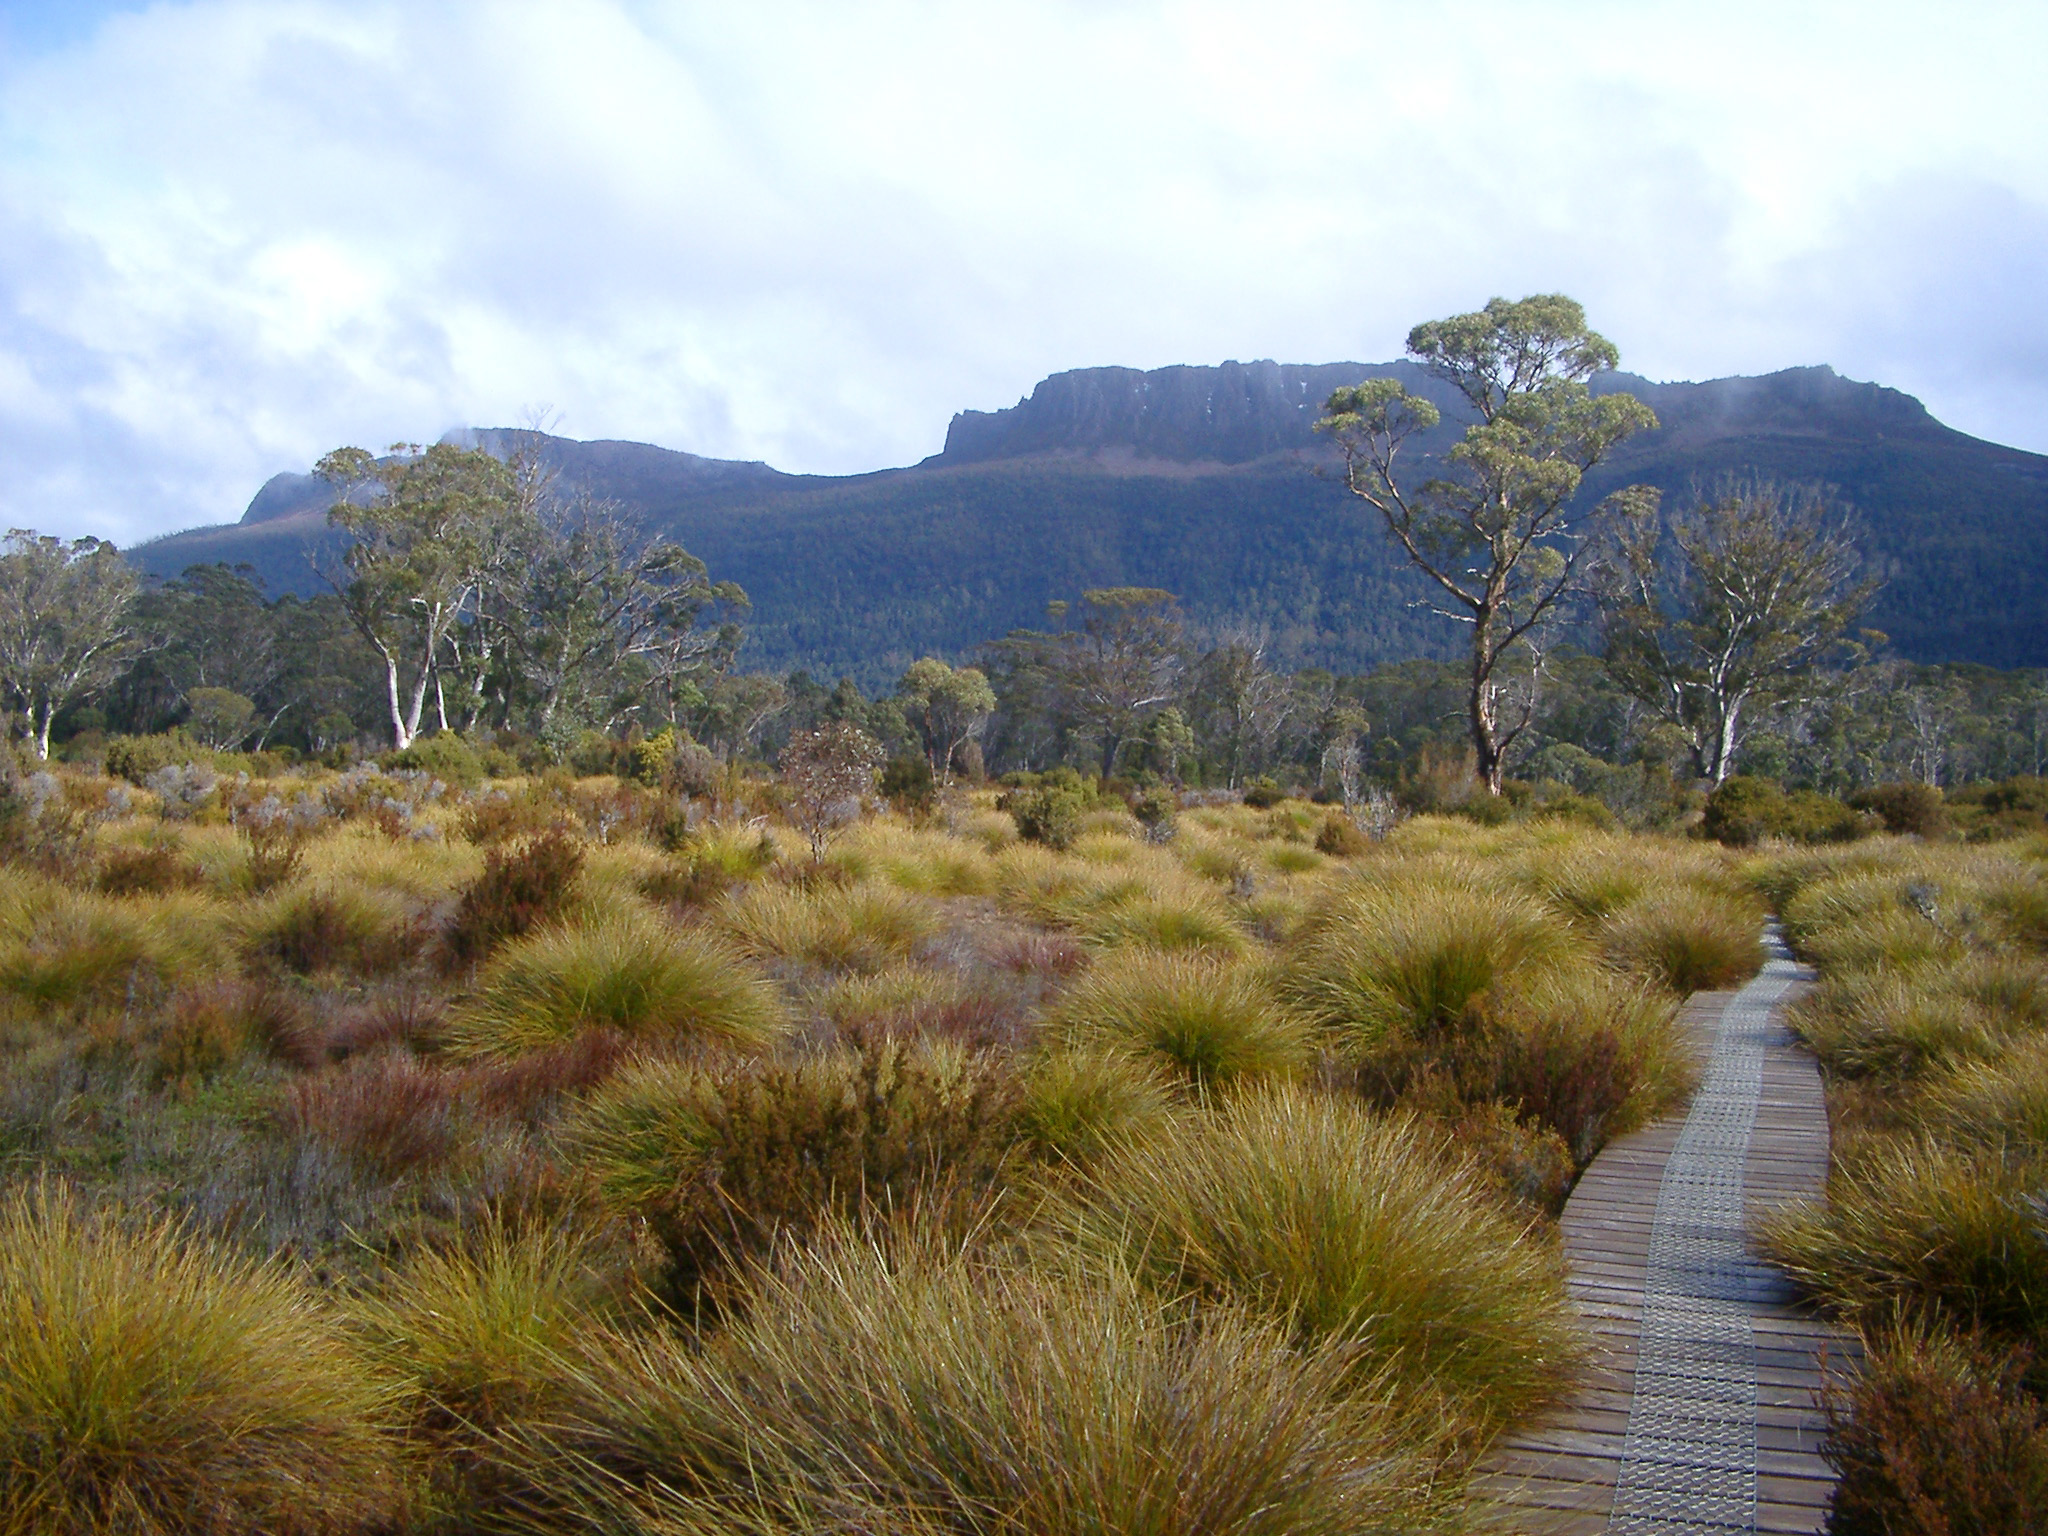 Wooden boardwalk on the overland track, Tasmania, meandering through hummocks of button grass towards distant mountain peaks in a scenic landscape